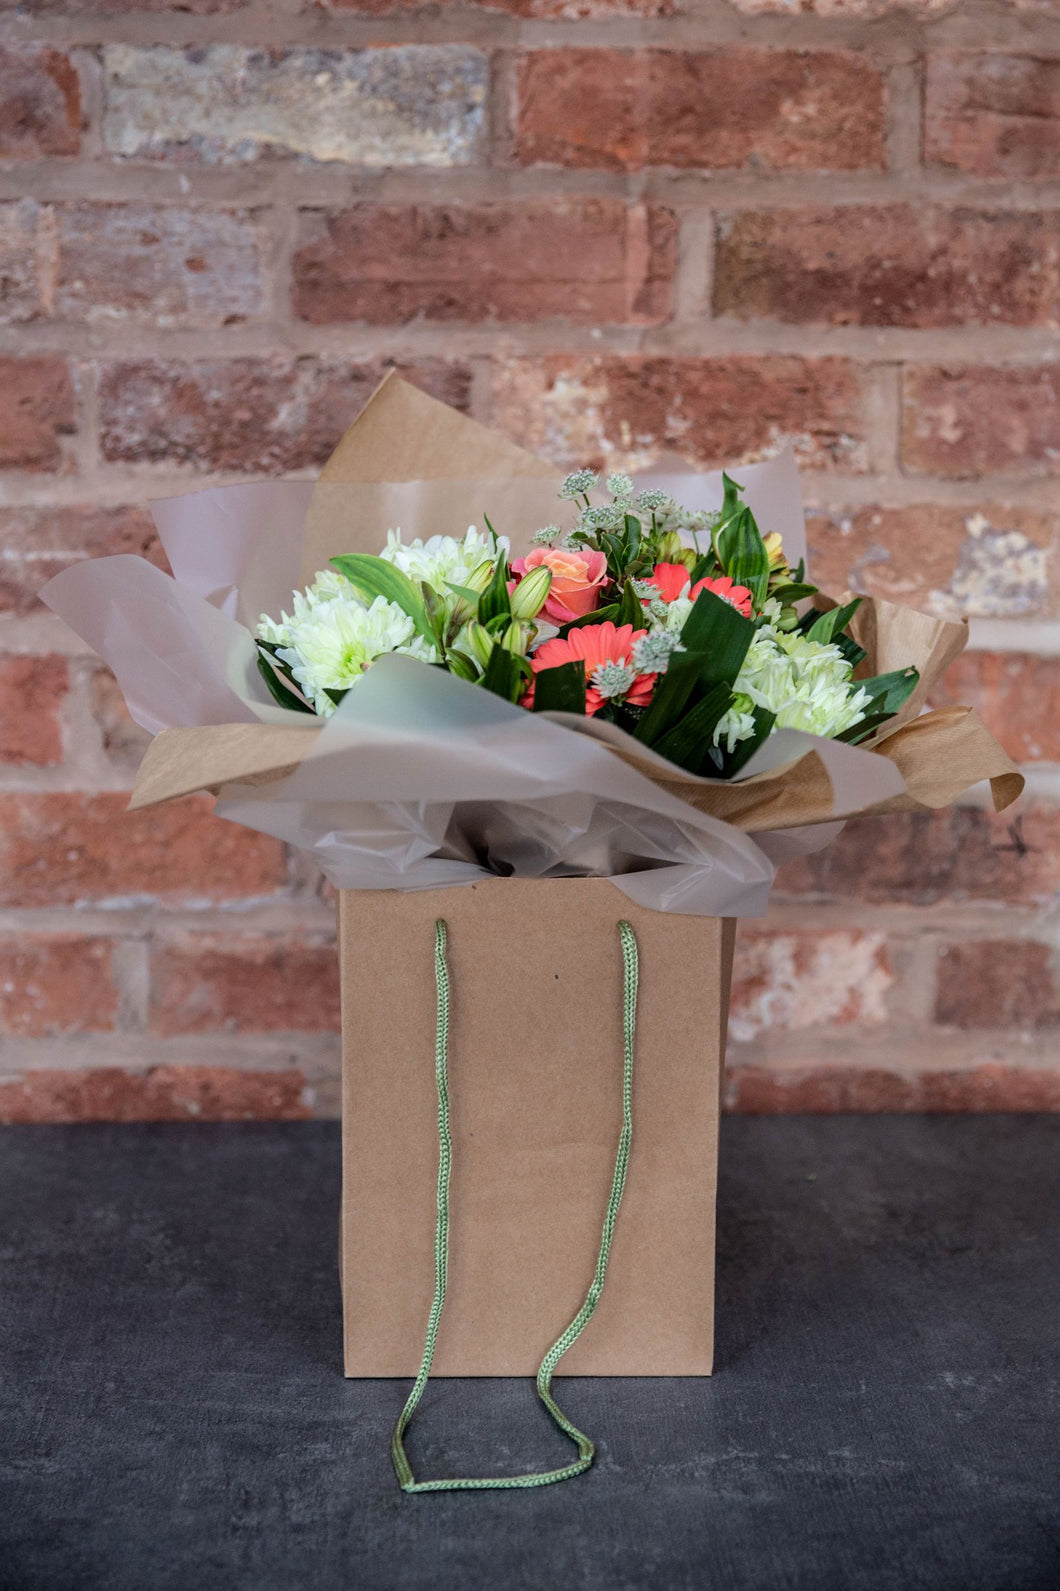 Coral rose and germini hand-tied bouquet